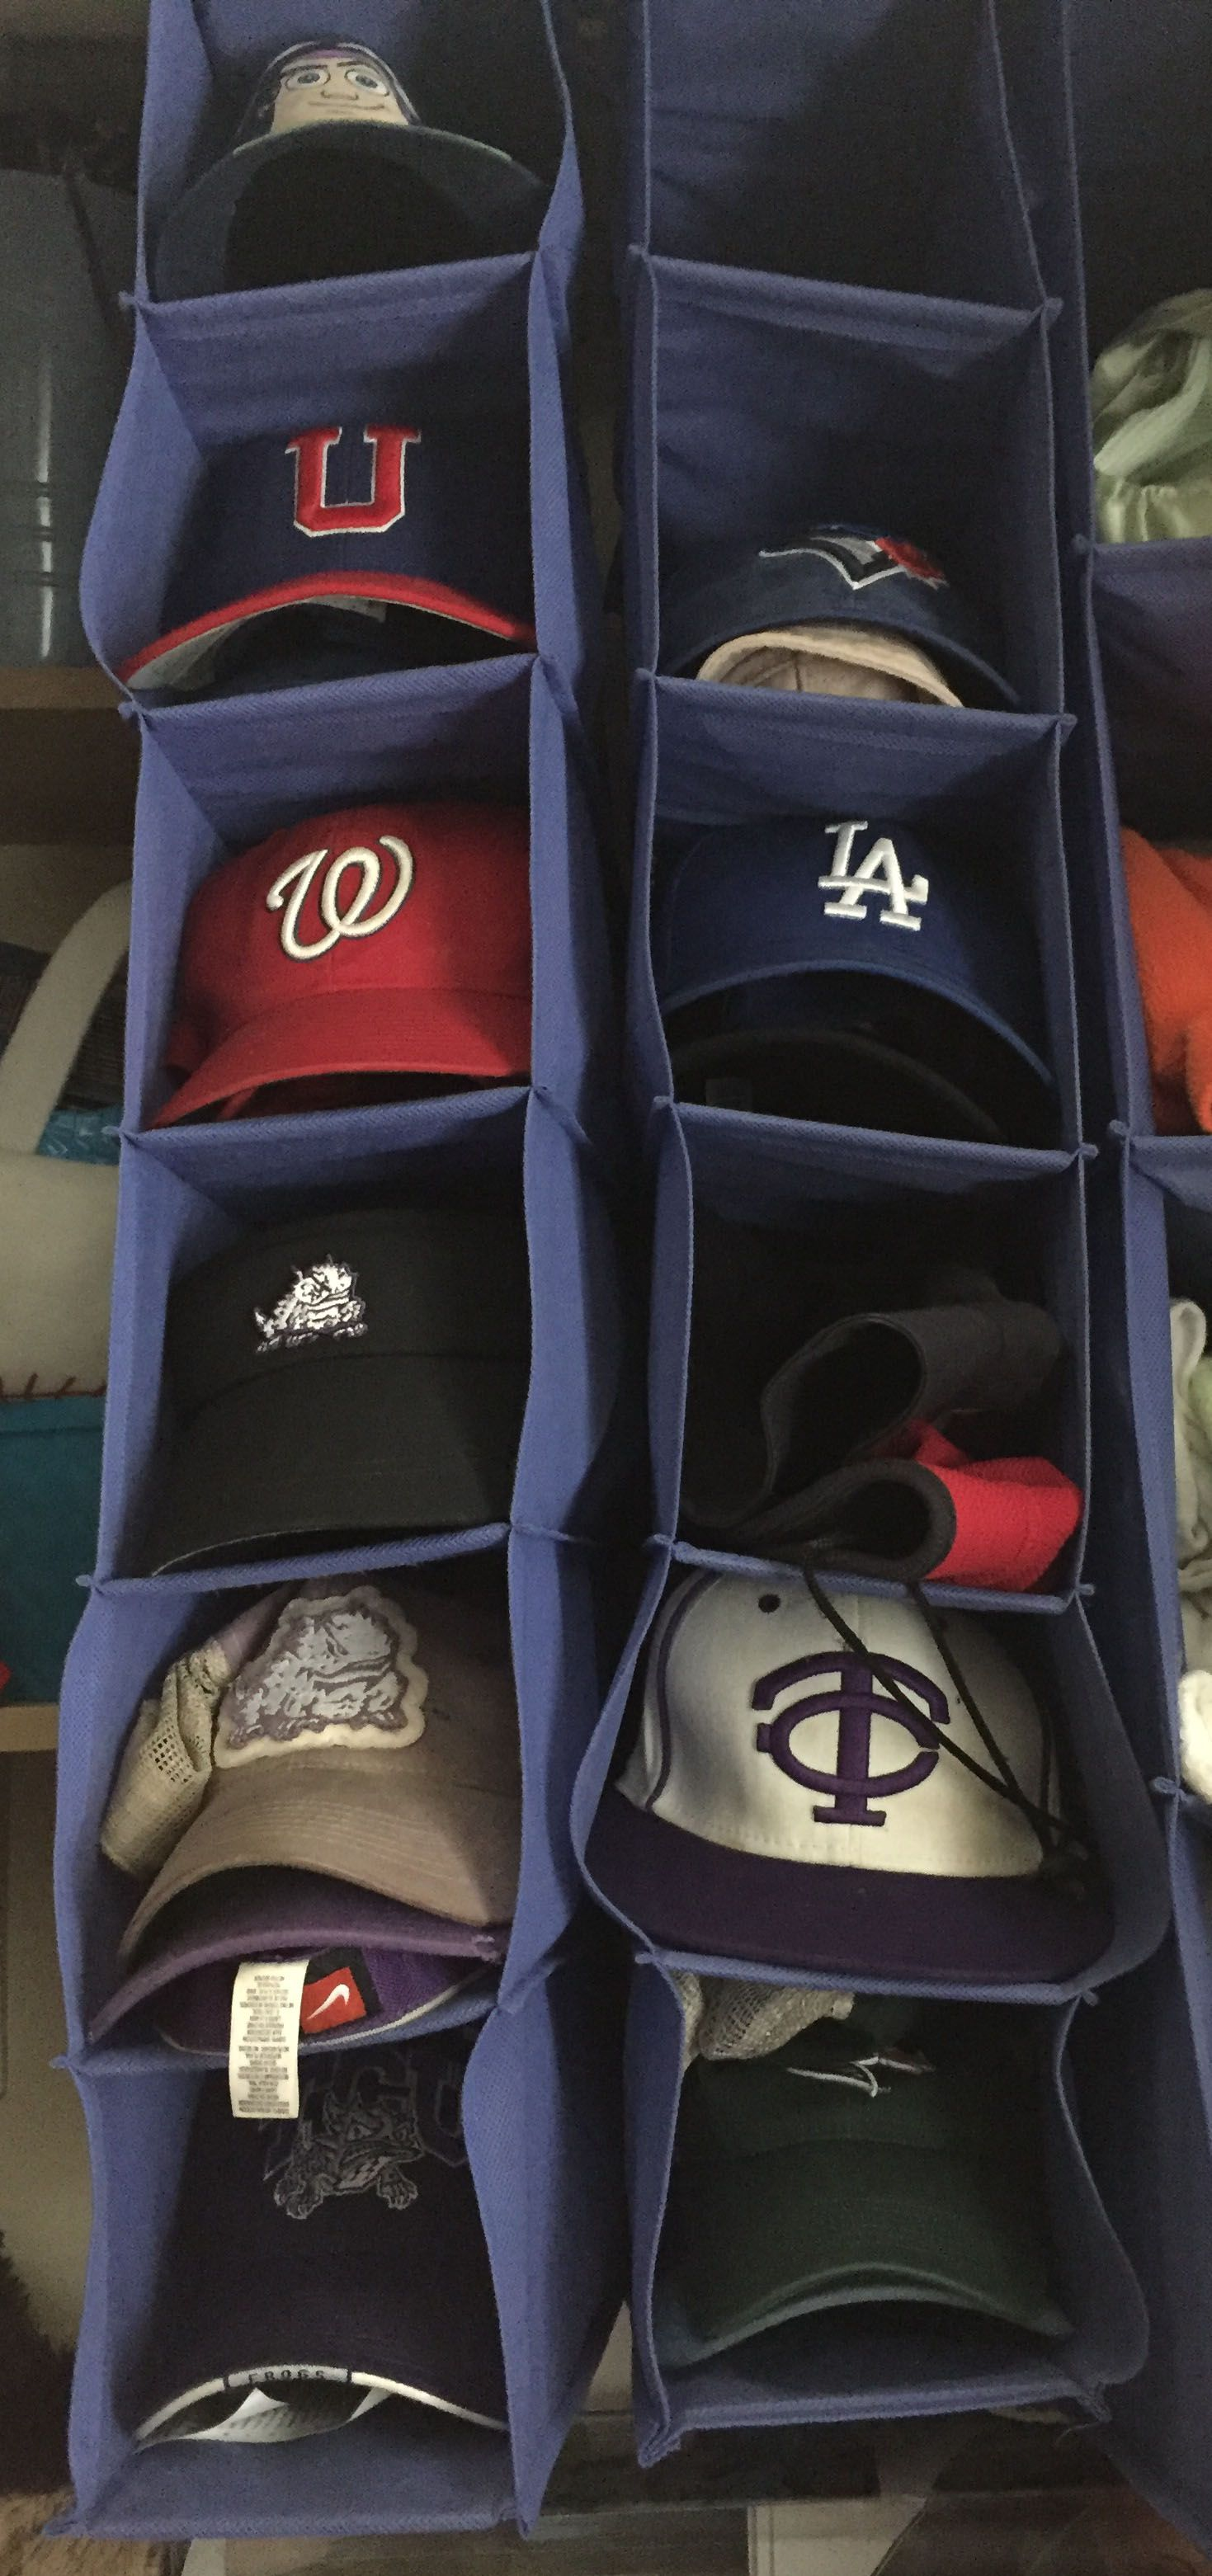 Delightful One Of The Simple Solutions For Hat Storage